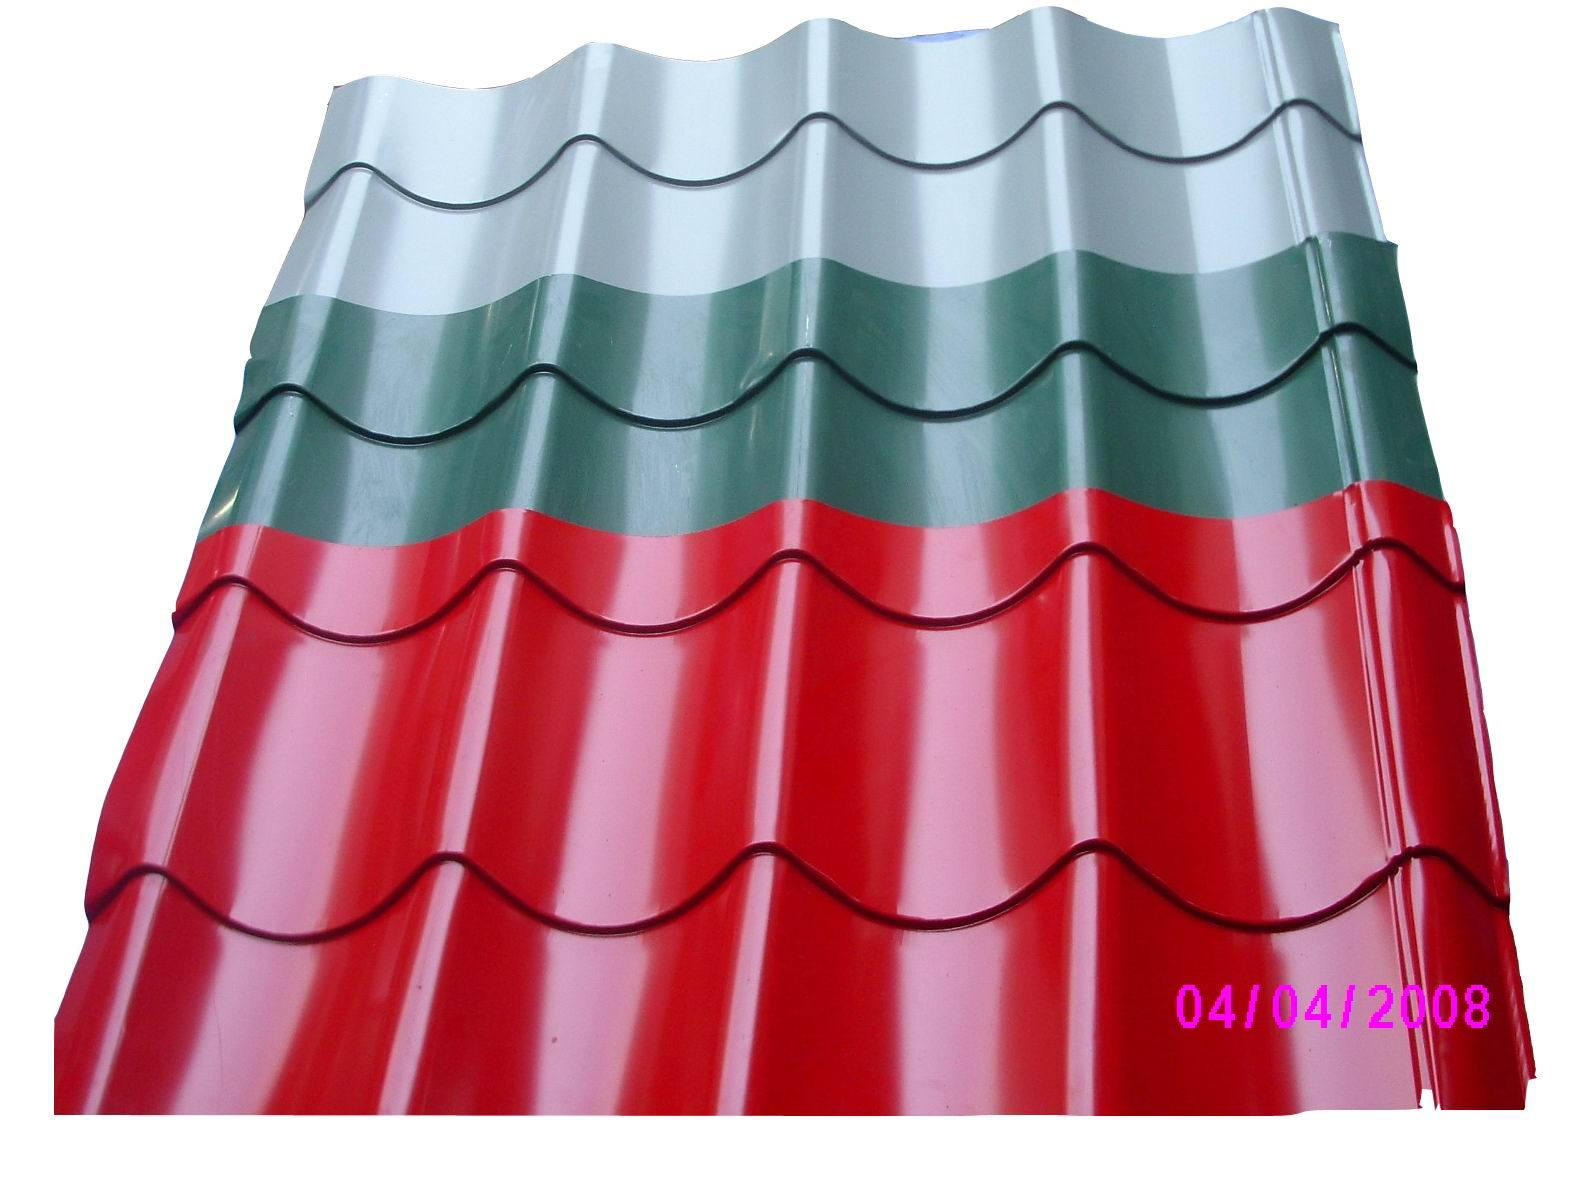 Colored Corrugated Metal Roofing Lowes